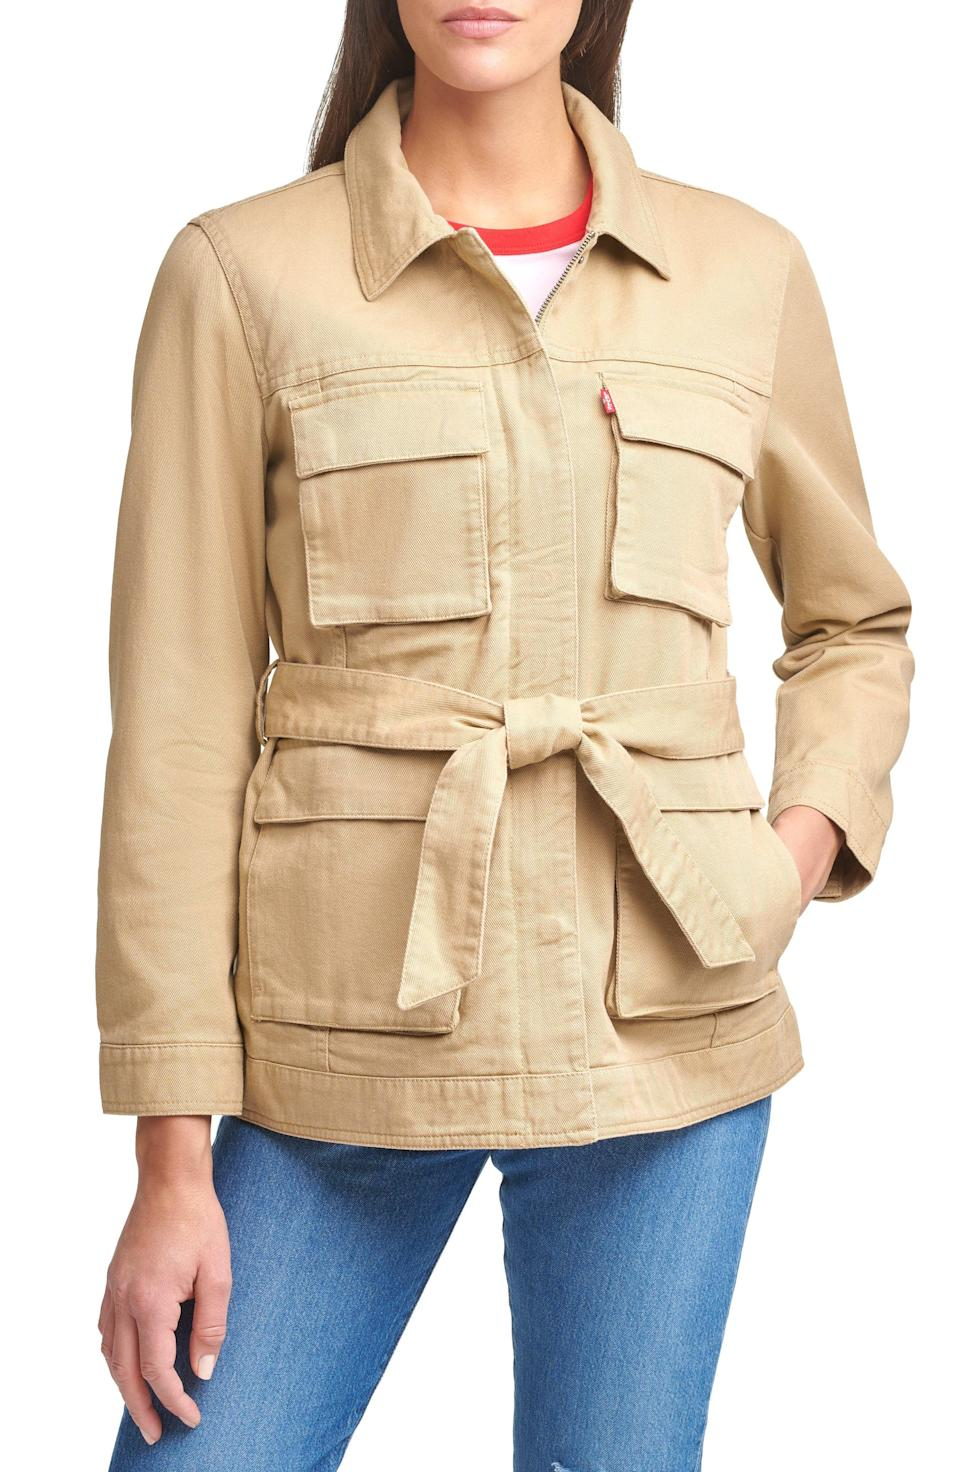 """<p><strong>Levi's</strong></p><p>nordstrom.com</p><p><strong>$150.00</strong></p><p><a href=""""https://go.redirectingat.com?id=74968X1596630&url=https%3A%2F%2Fwww.nordstrom.com%2Fs%2Flevis-safari-denim-jacket%2F5872123&sref=https%3A%2F%2Fwww.prevention.com%2Fbeauty%2Fstyle%2Fg37148346%2Fbest-jean-jackets-for-women%2F"""" rel=""""nofollow noopener"""" target=""""_blank"""" data-ylk=""""slk:Shop Now"""" class=""""link rapid-noclick-resp"""">Shop Now</a></p><p>We love the style of this pulled-together casual safari denim jacket. <strong>The belted accessory is removable and instead of buttons, you'll find a front zip with additional snap closures</strong>. Plus, you can never have enough pockets. There are four cargo flap-patch pockets on the front side to store all your necessities (like a wallet, <a href=""""https://www.prevention.com/health/a31248367/how-to-clean-cell-phone/"""" rel=""""nofollow noopener"""" target=""""_blank"""" data-ylk=""""slk:cell phone"""" class=""""link rapid-noclick-resp"""">cell phone</a>, <a href=""""https://www.prevention.com/beauty/skin-care/g26934681/best-lip-balm-with-spf/"""" rel=""""nofollow noopener"""" target=""""_blank"""" data-ylk=""""slk:lip balm"""" class=""""link rapid-noclick-resp"""">lip balm</a>, etc.)</p>"""